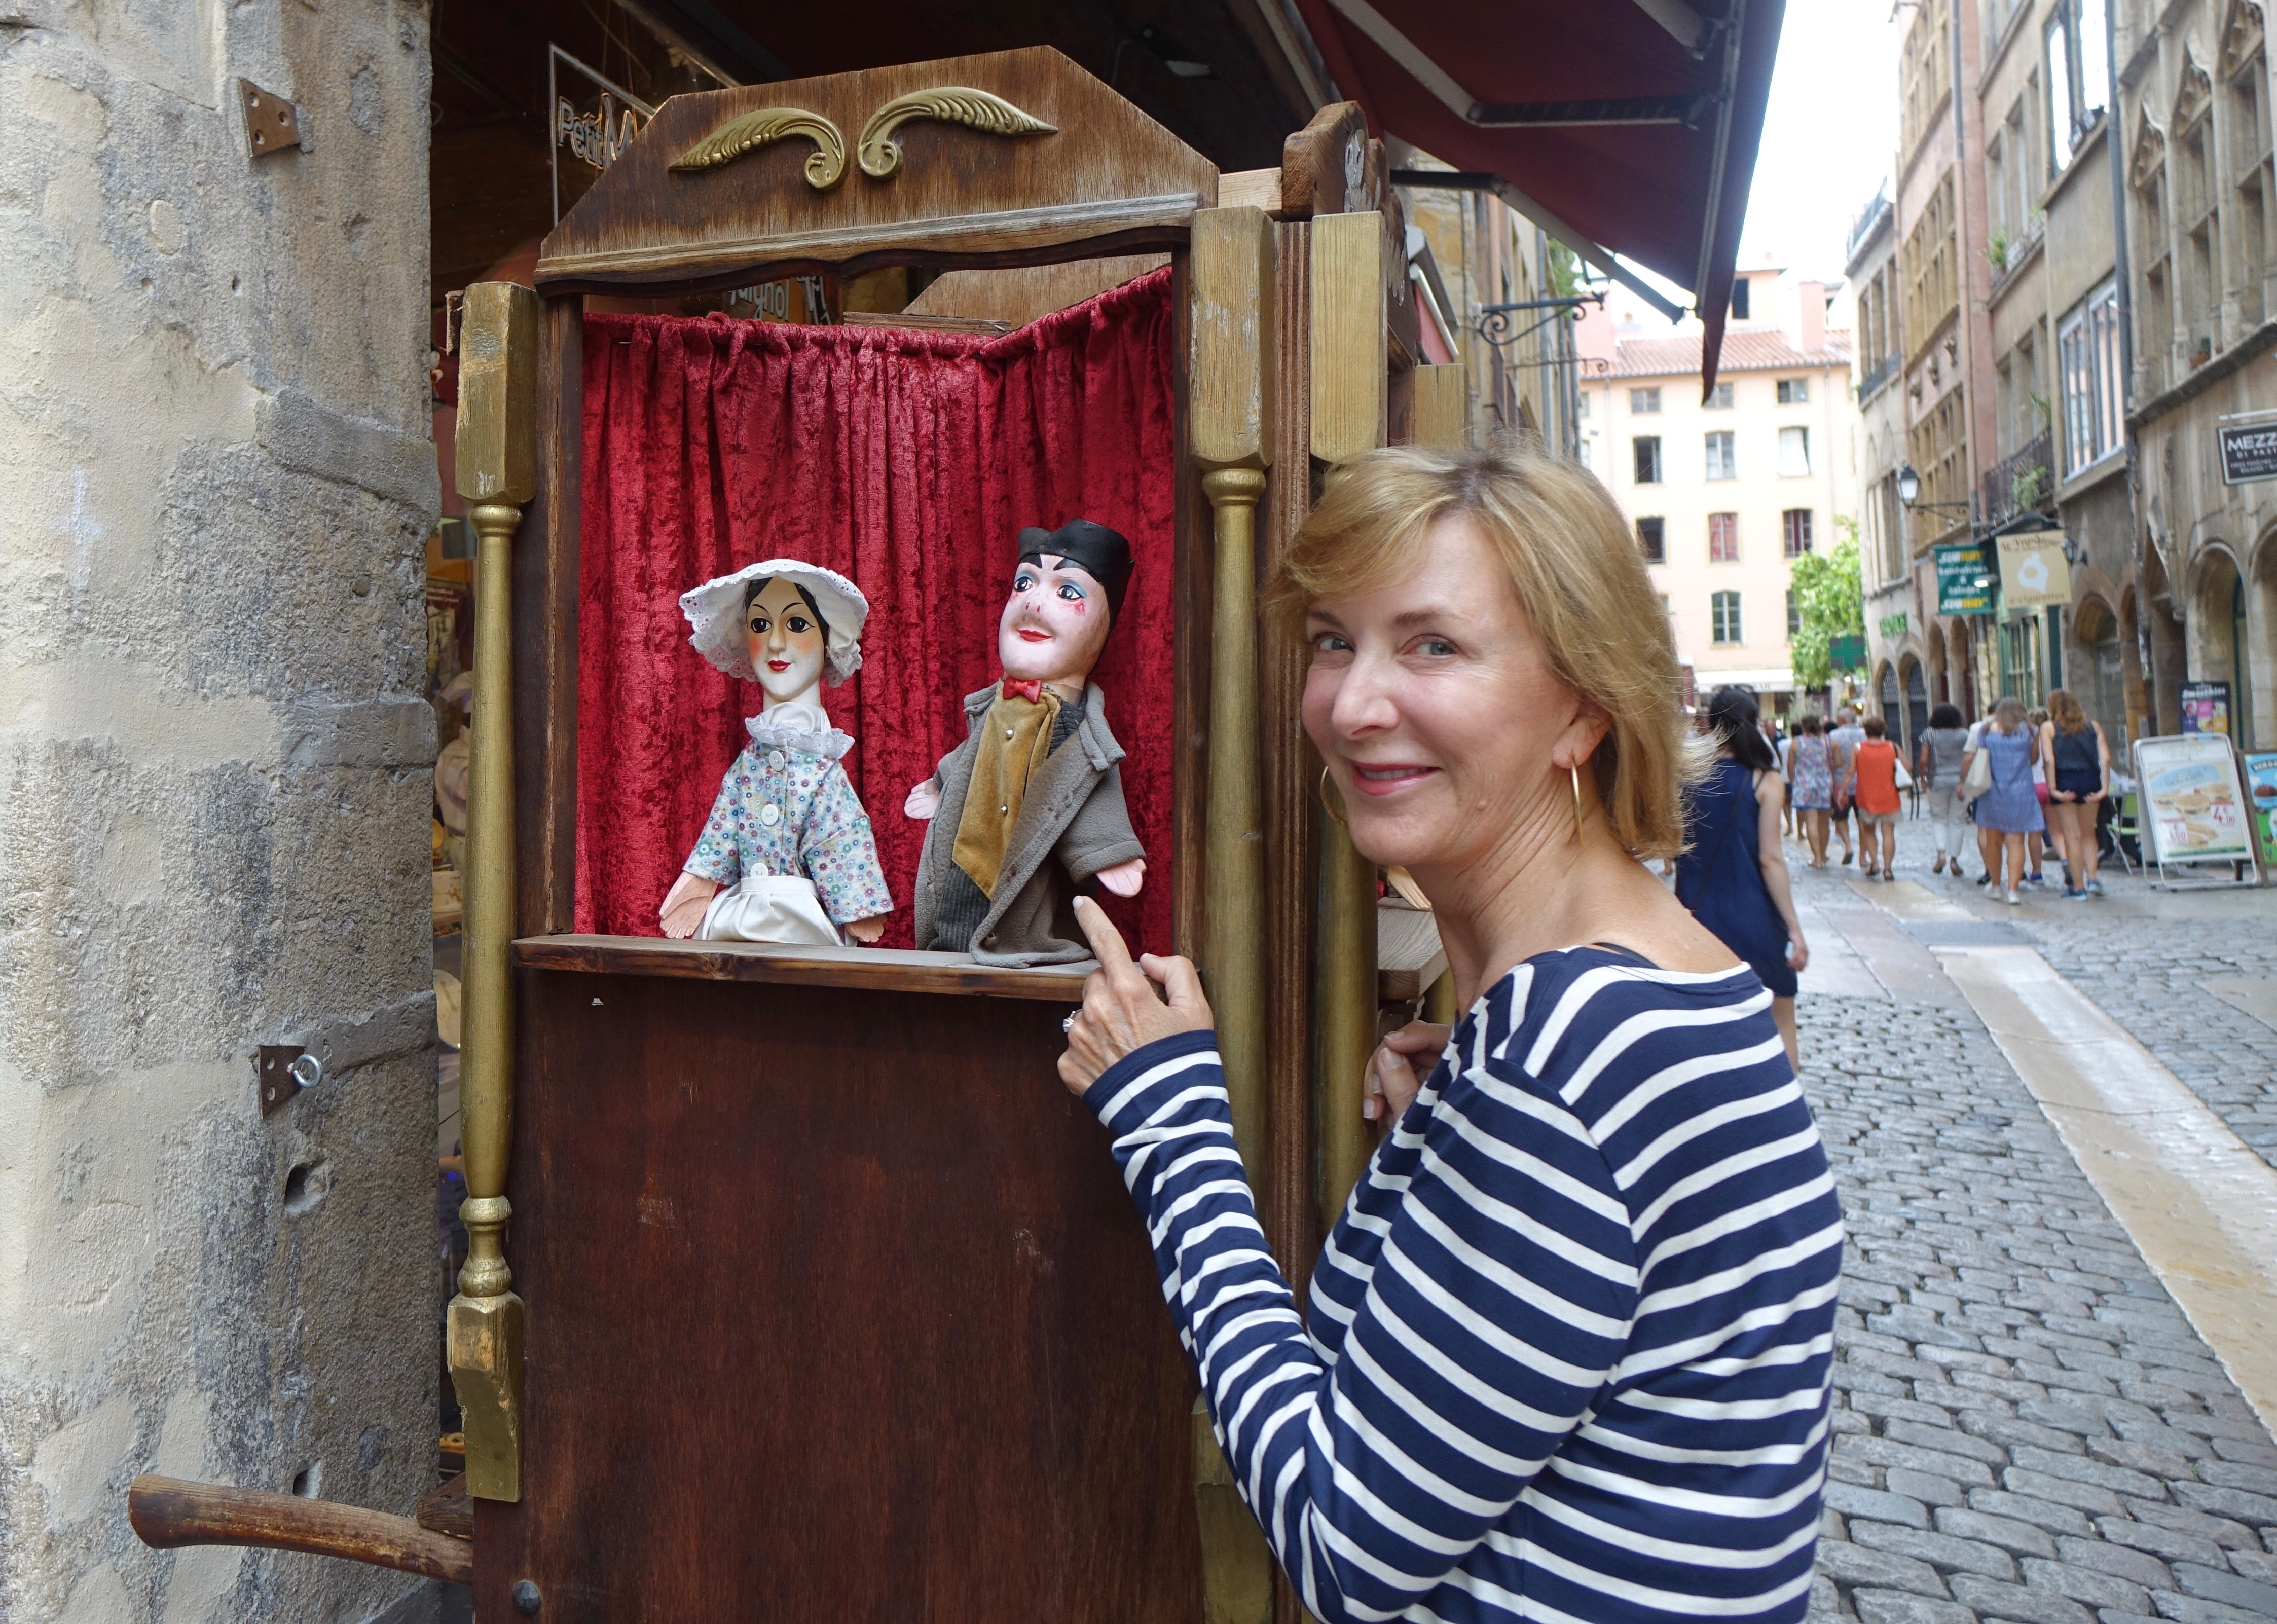 Guignol is puppet show icon who amuses children and witty adults, similar to Punch and Judy in the UK.